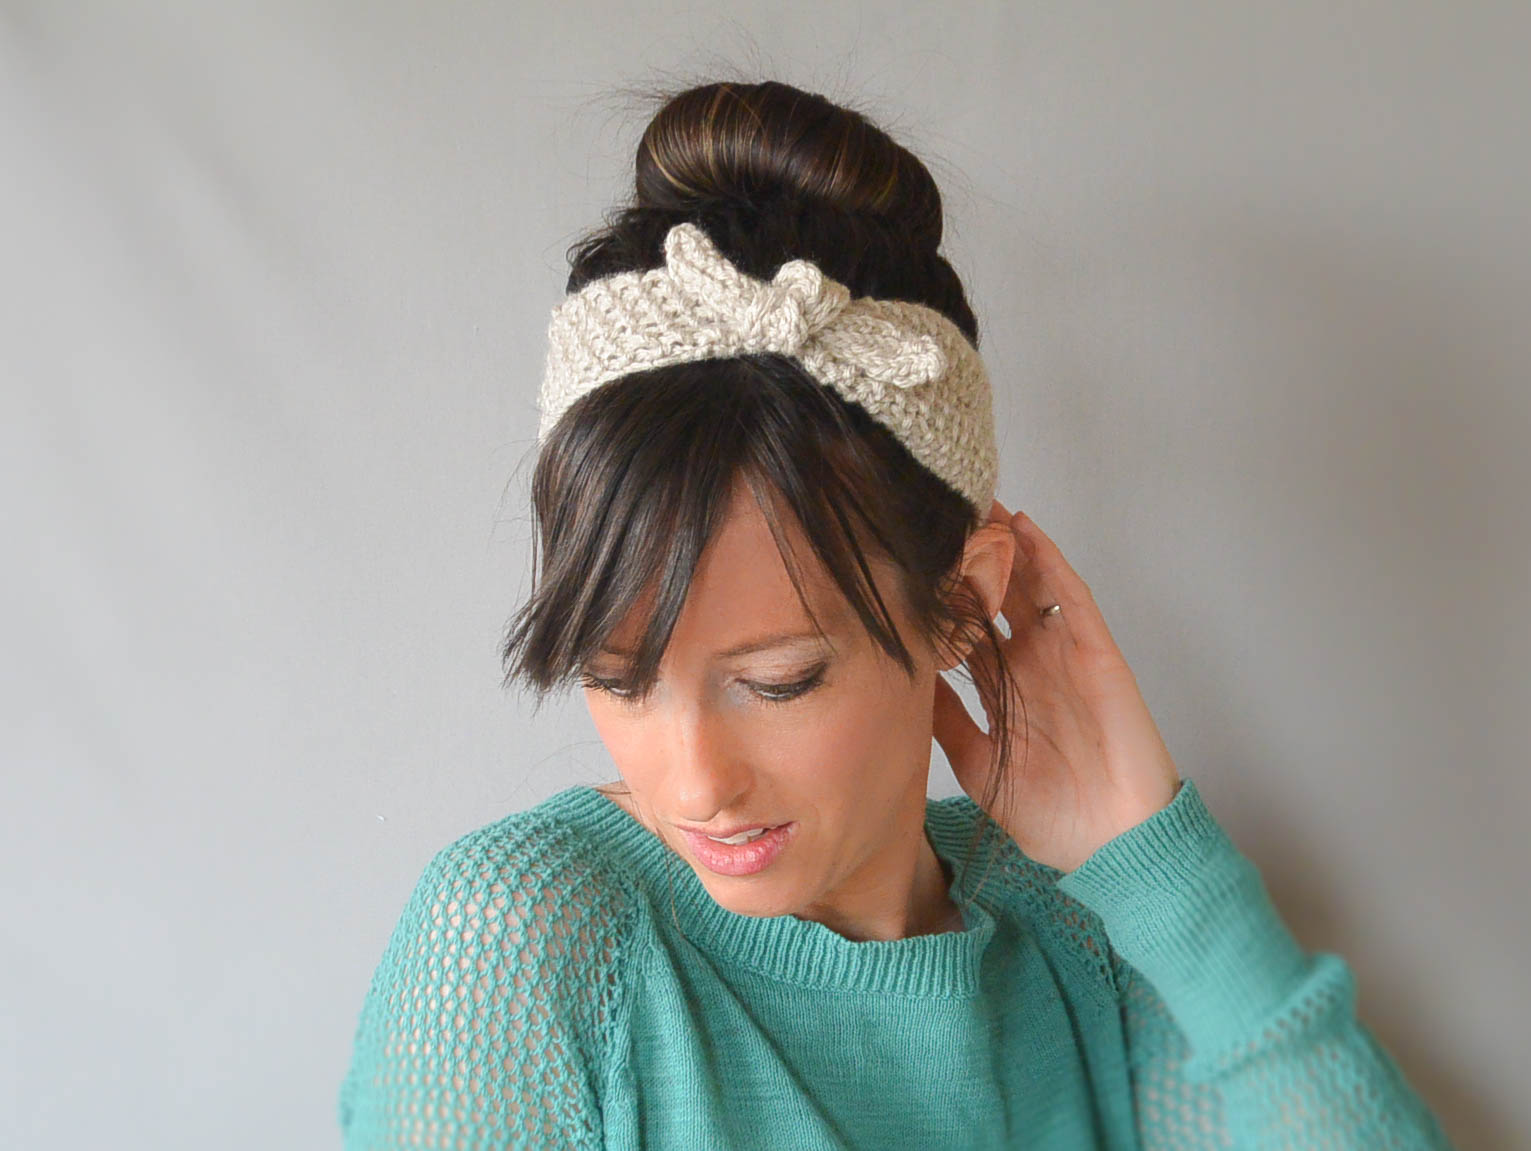 Vintage Knit Tie Headband Pattern - Mama In A Stitch